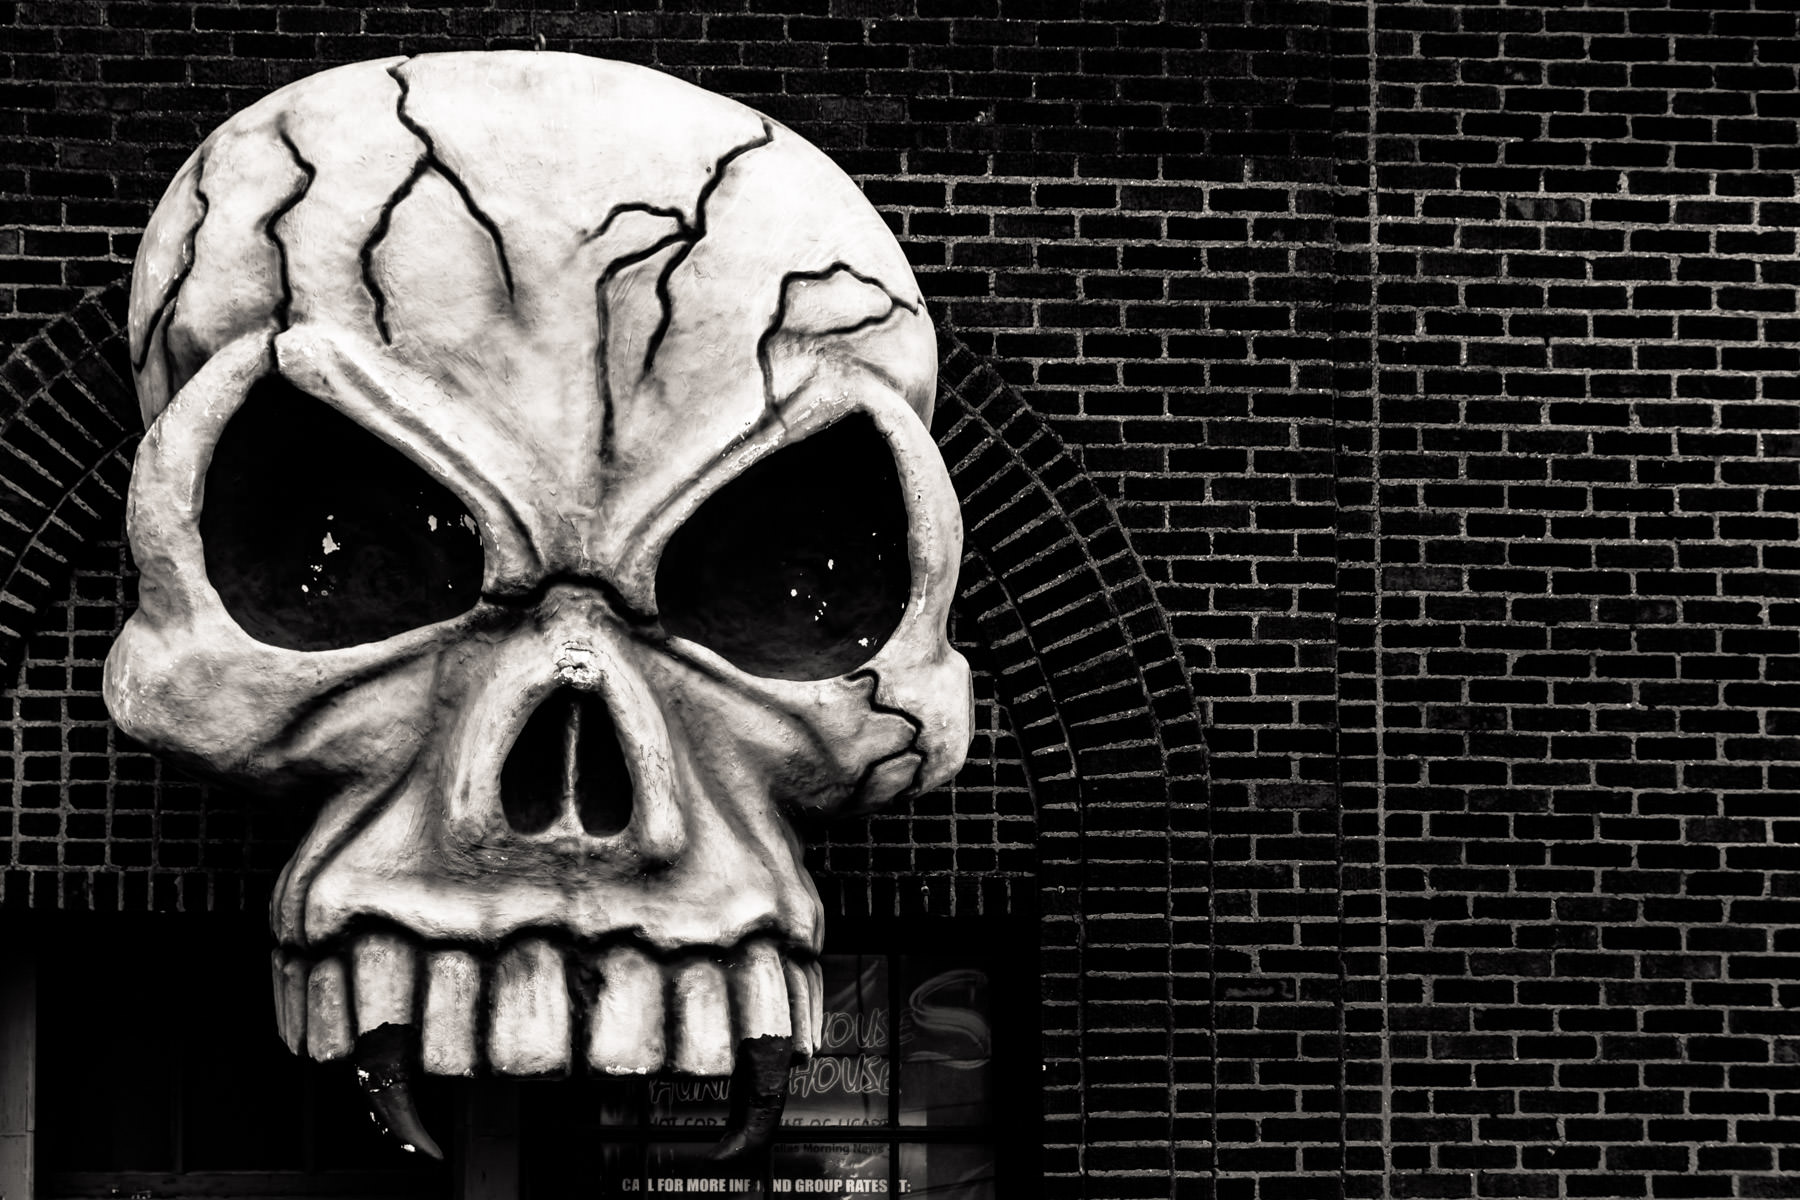 A giant, fanged skull spotted in Dallas' Deep Ellum neighborhood.